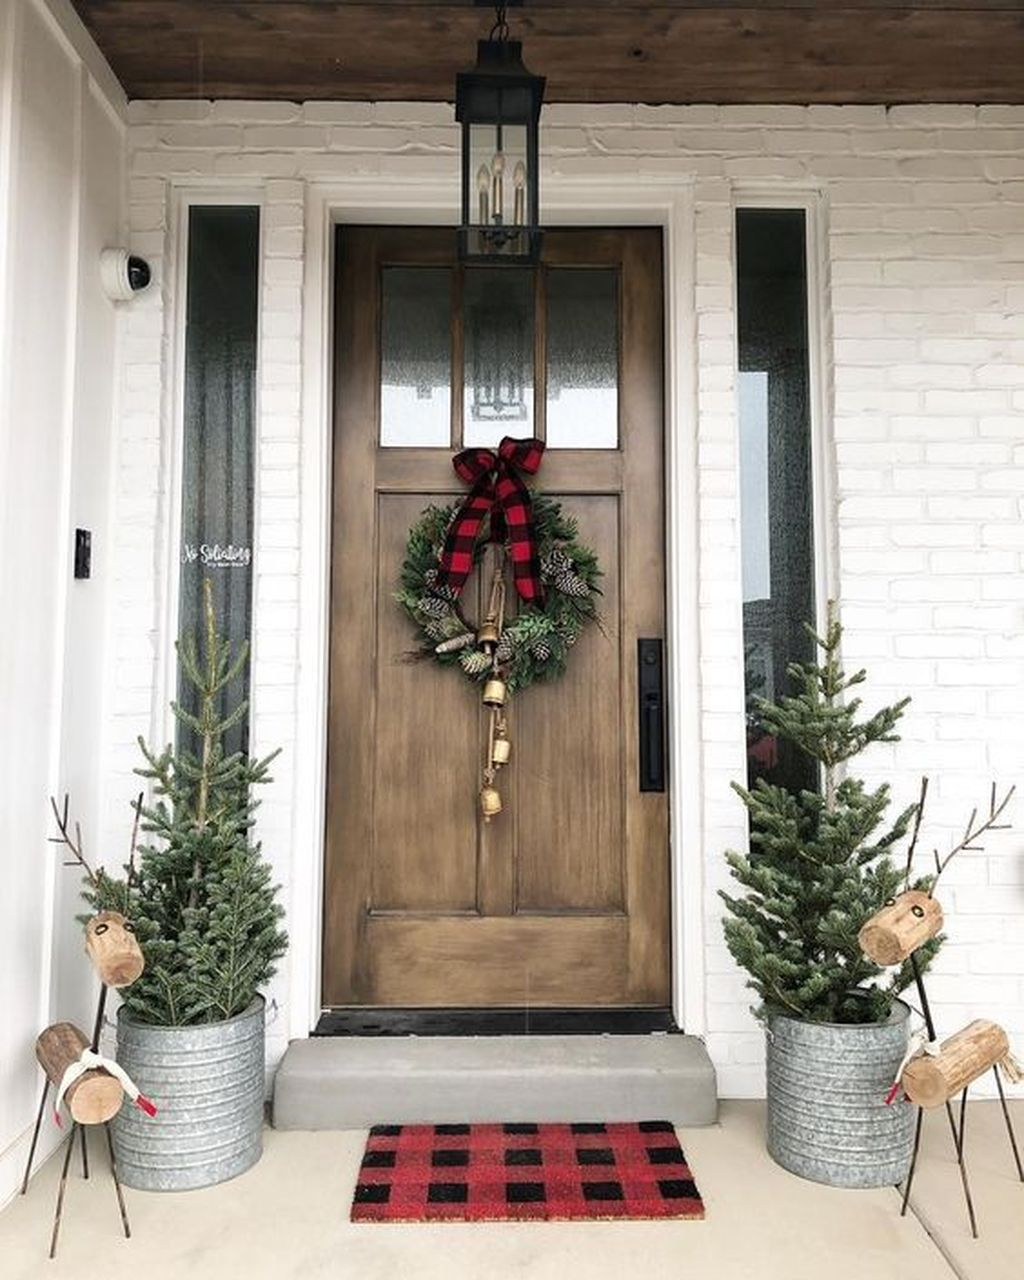 Nice Outdoor Christmas Decorations Perfect For This Winter 30